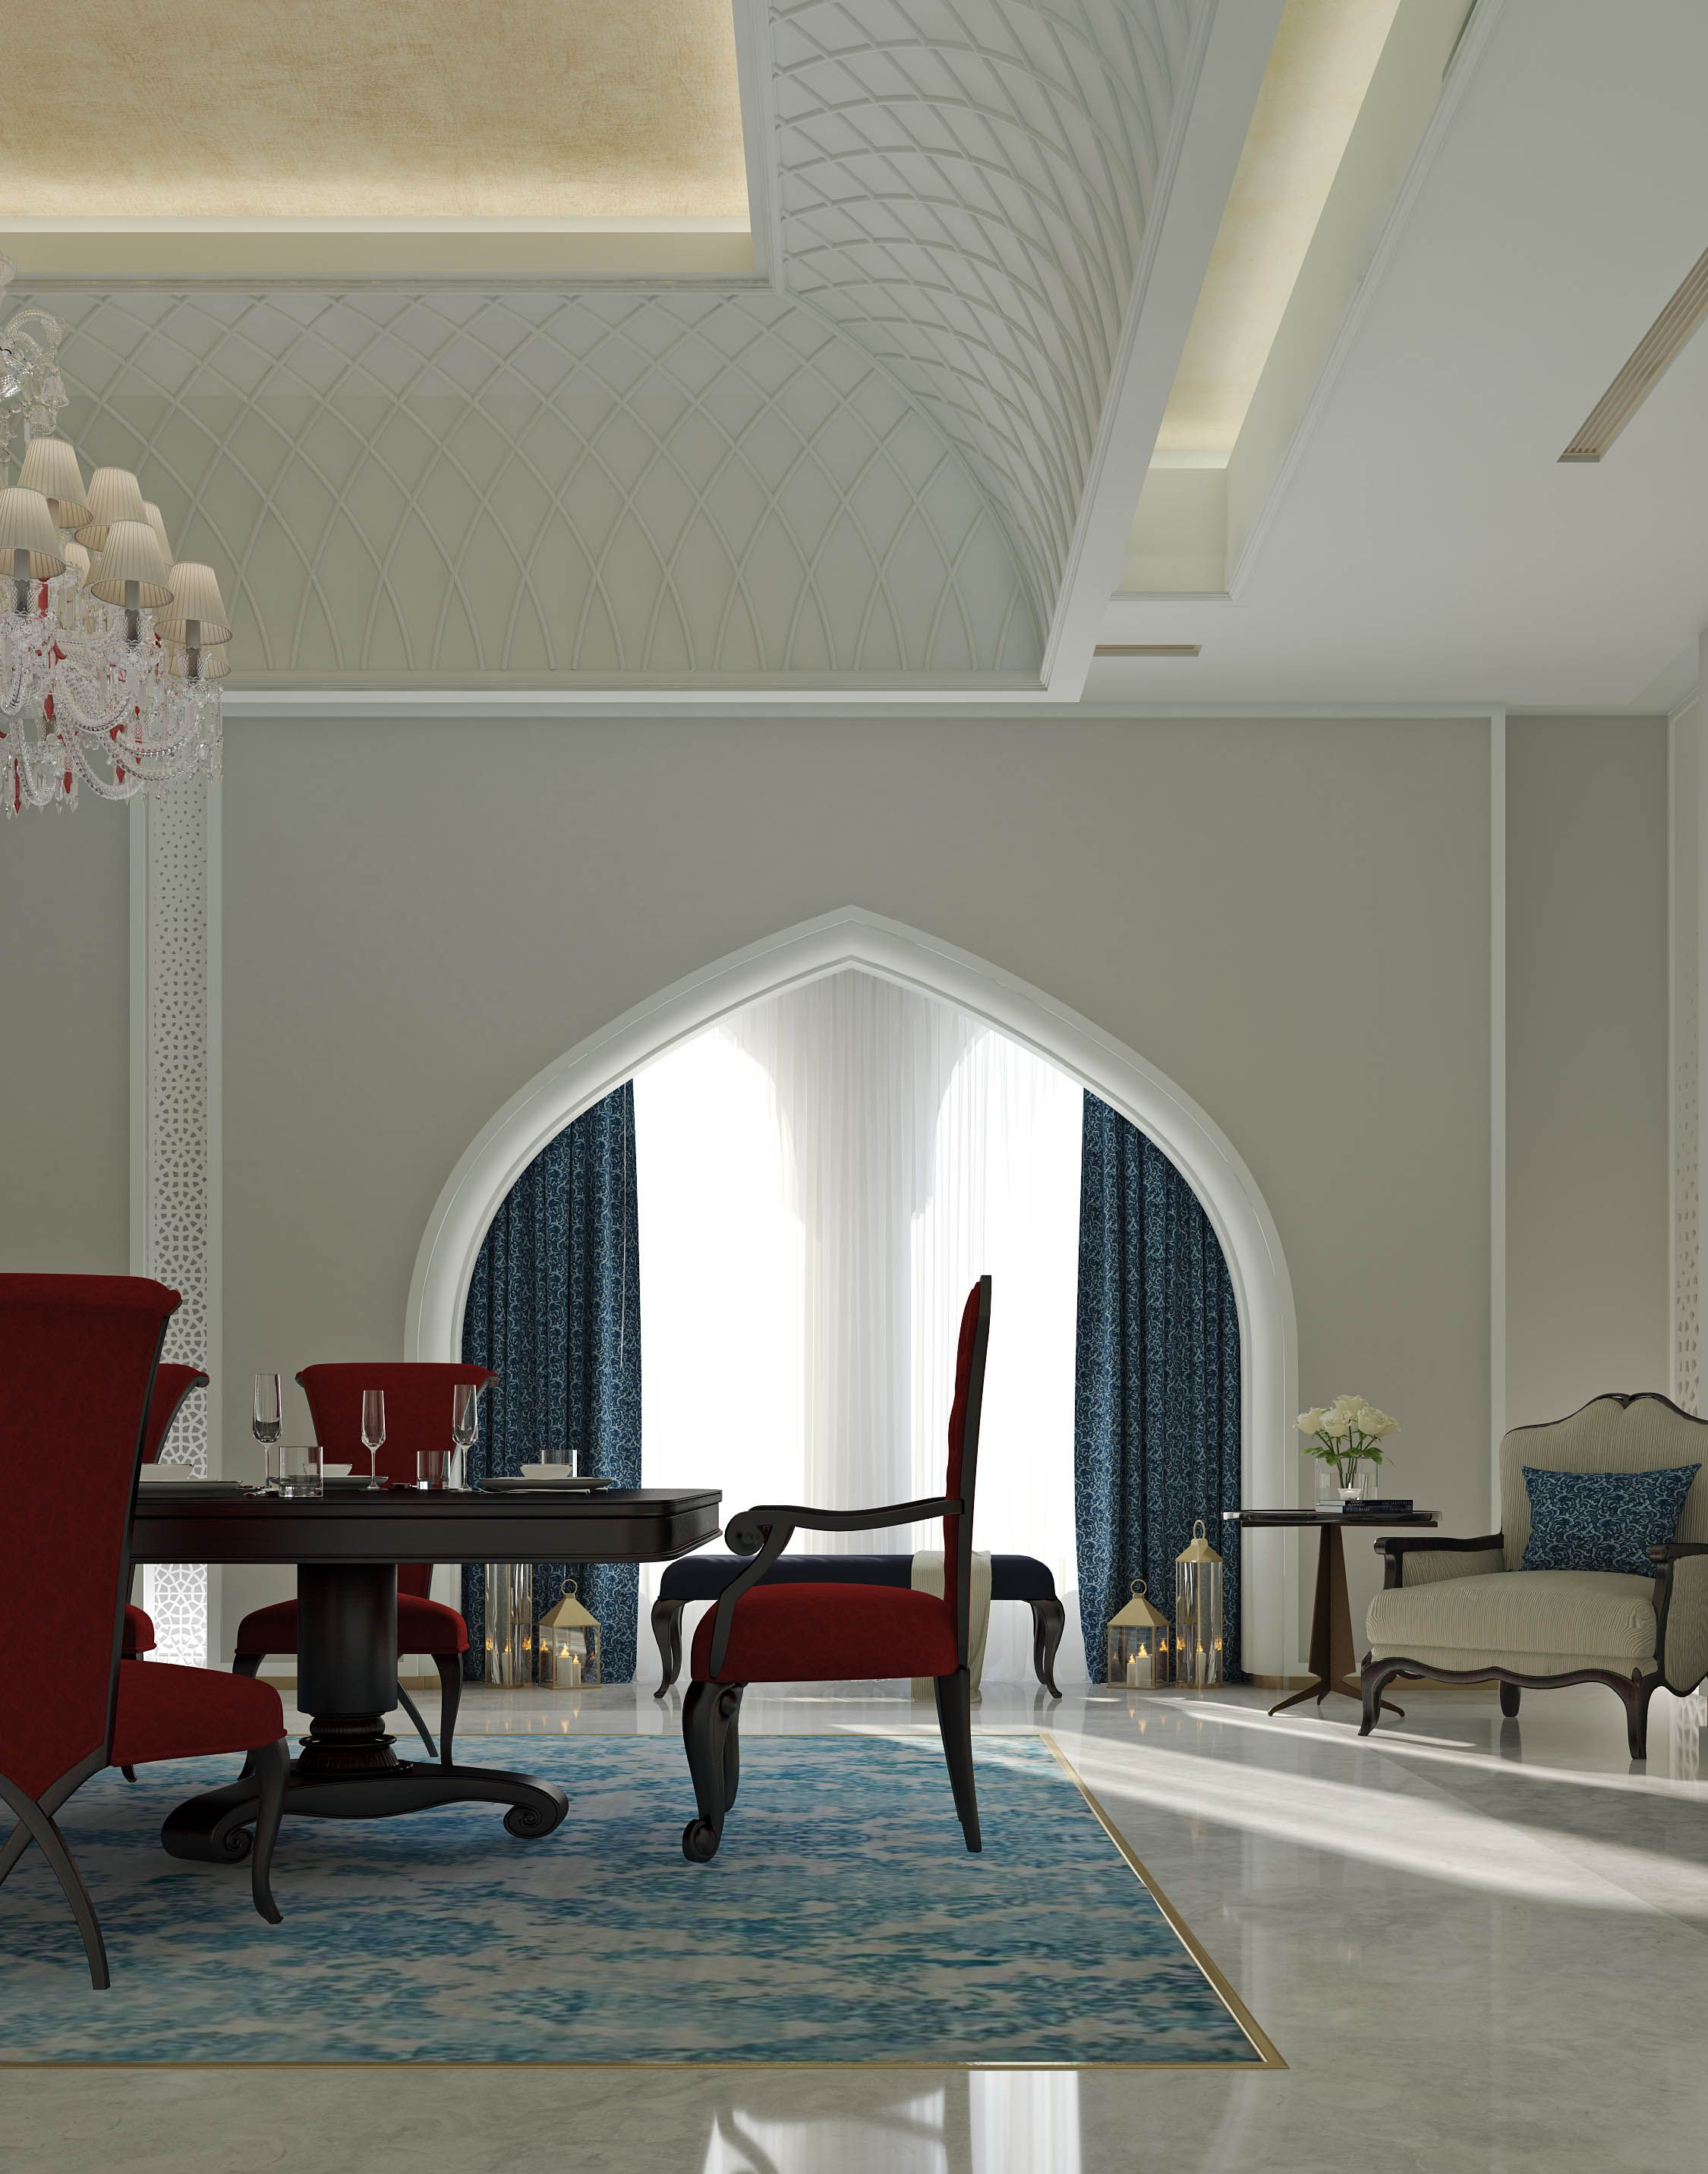 Mimar interiors also image may contain indoor master br in pinterest design rh